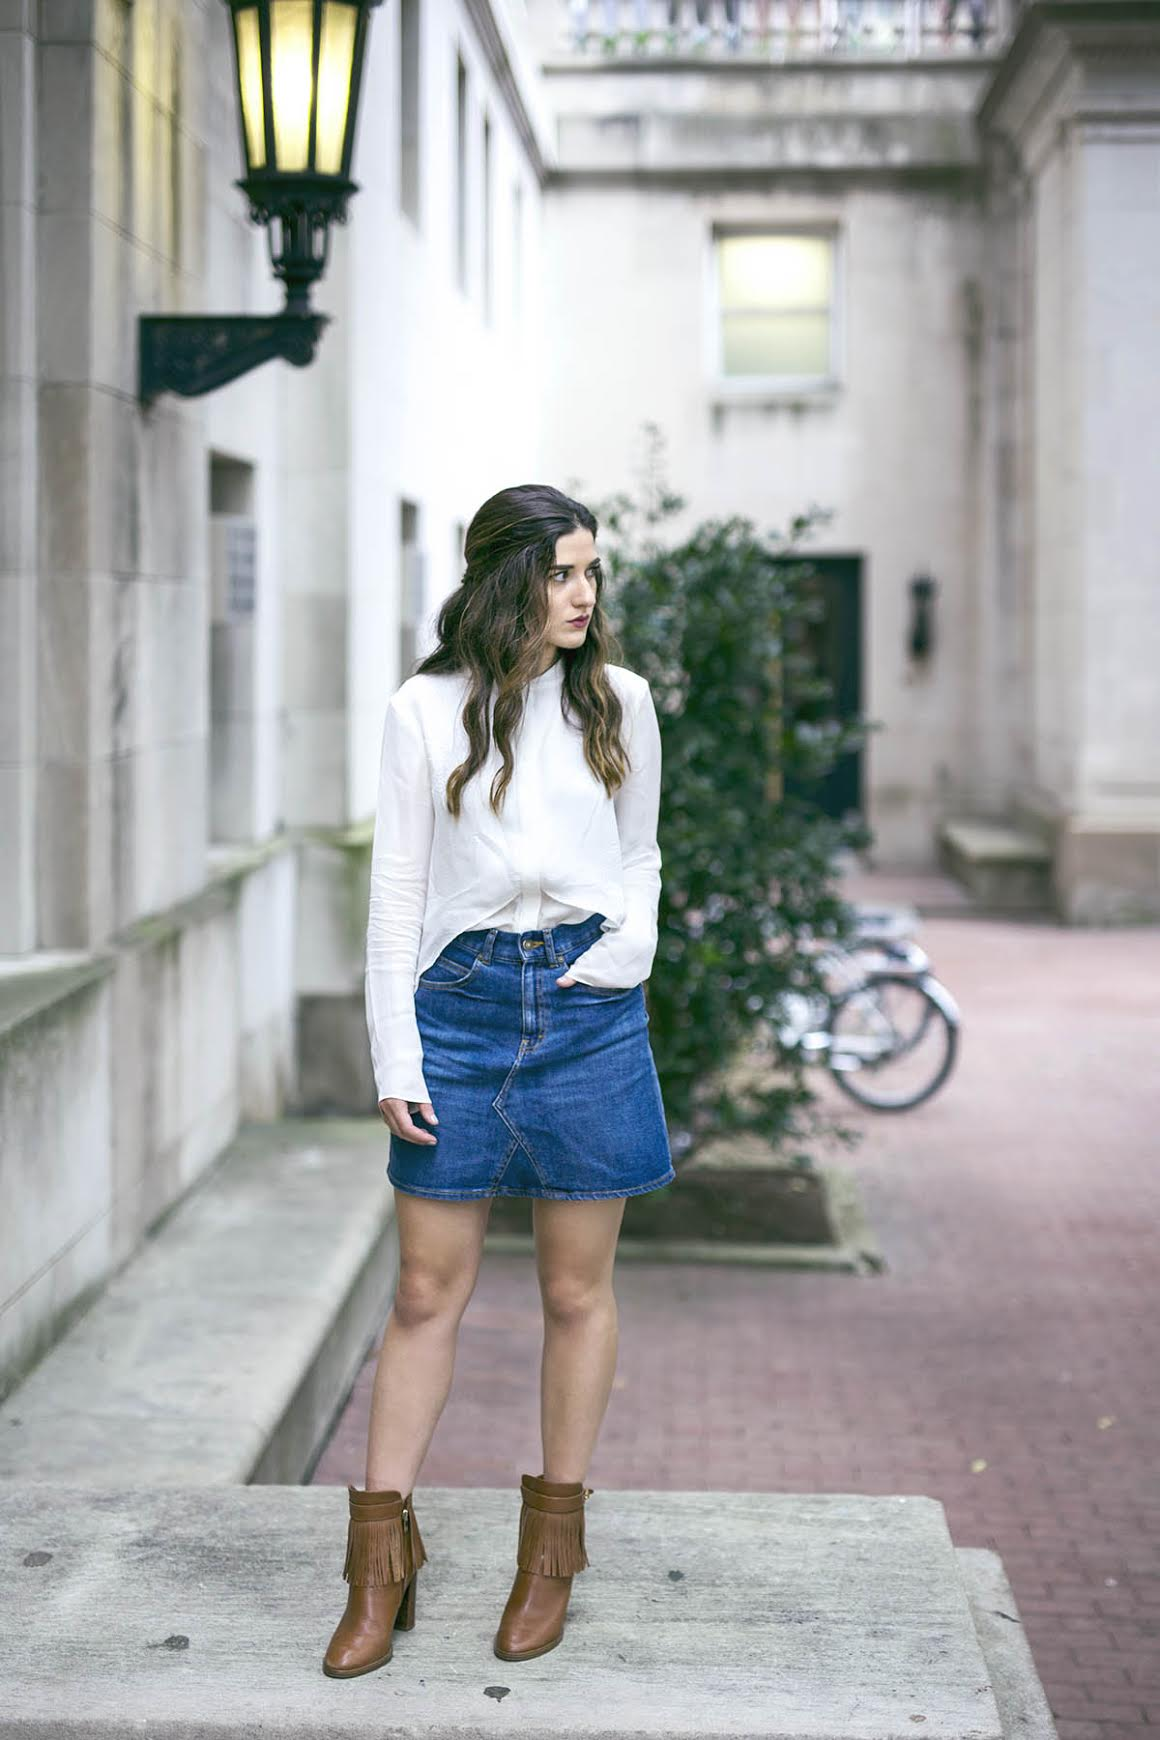 White Silk Top Chelsea and Walker Louboutins & Love Fashion Blog Esther Santer NYC Street Style Blogger Outfit OOTD Trendy Jean Denim Skirt Zara Clutch Bag Erin Dana Gold Chain Ivanka Trump Fringe Booties Inspo Cute Women Girl Transitional Pieces Fall.jpg